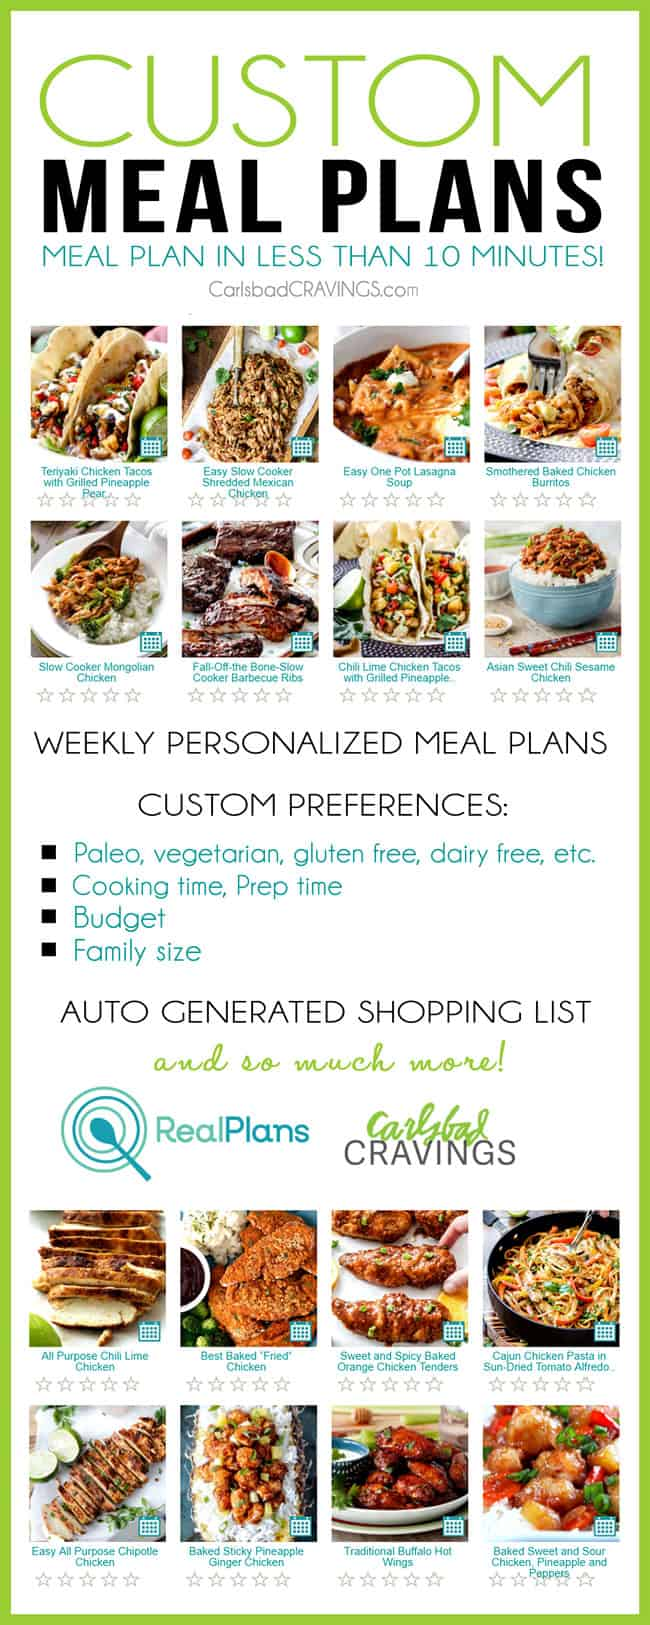 Simplify Your Life with Real Plans Meal Plans!